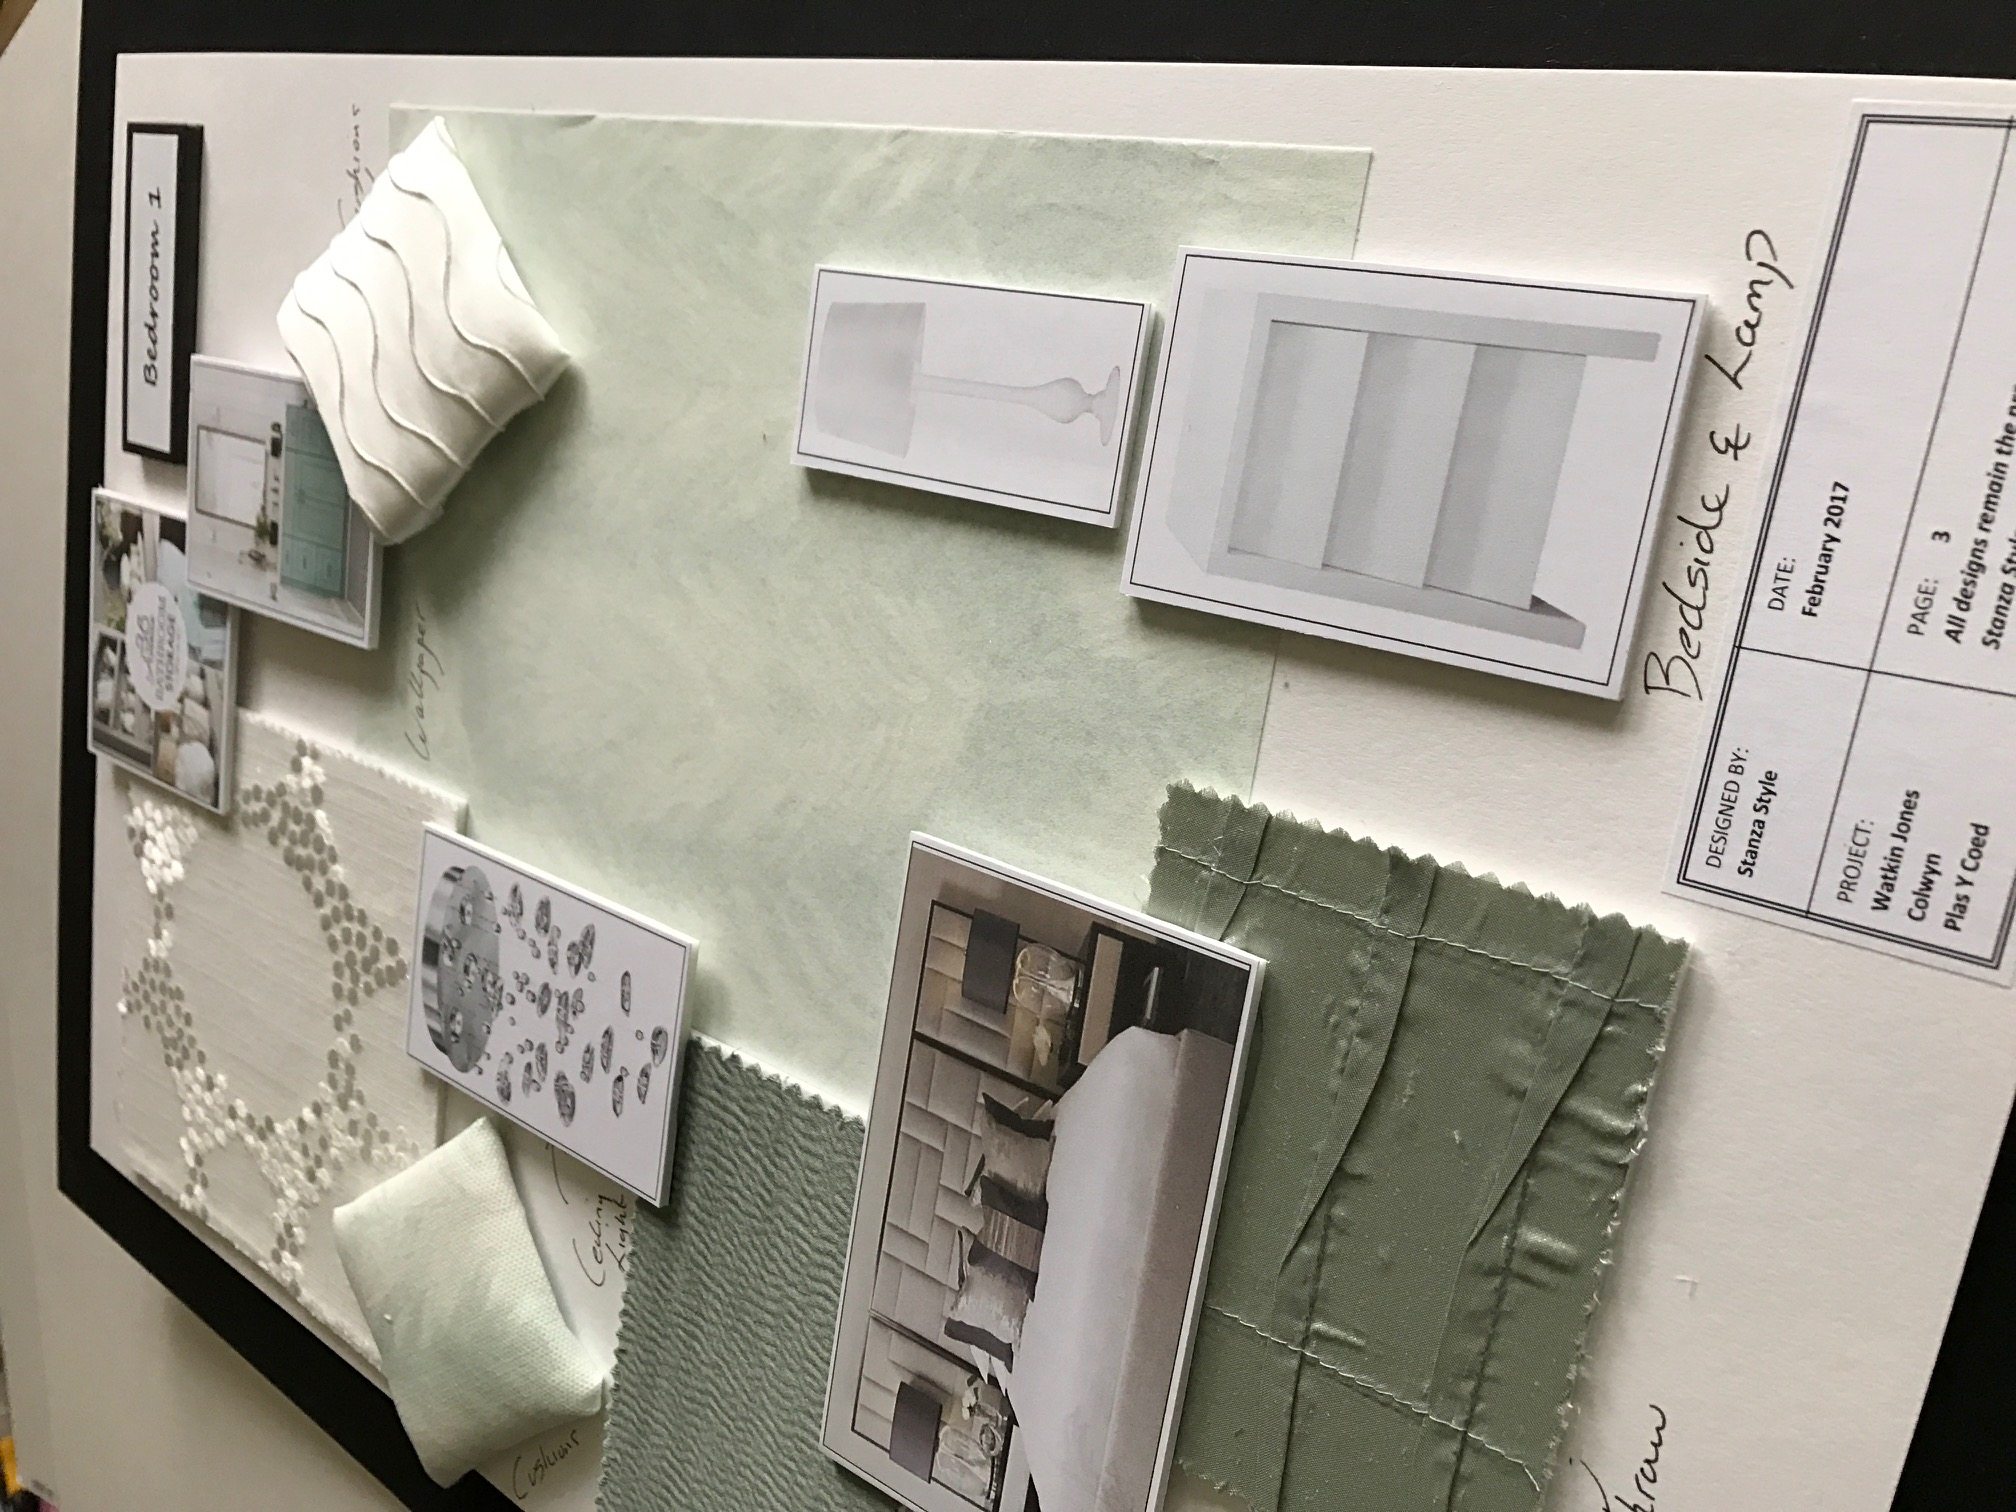 mint-bedroom-design-boards-mood-boards-styling-pitch